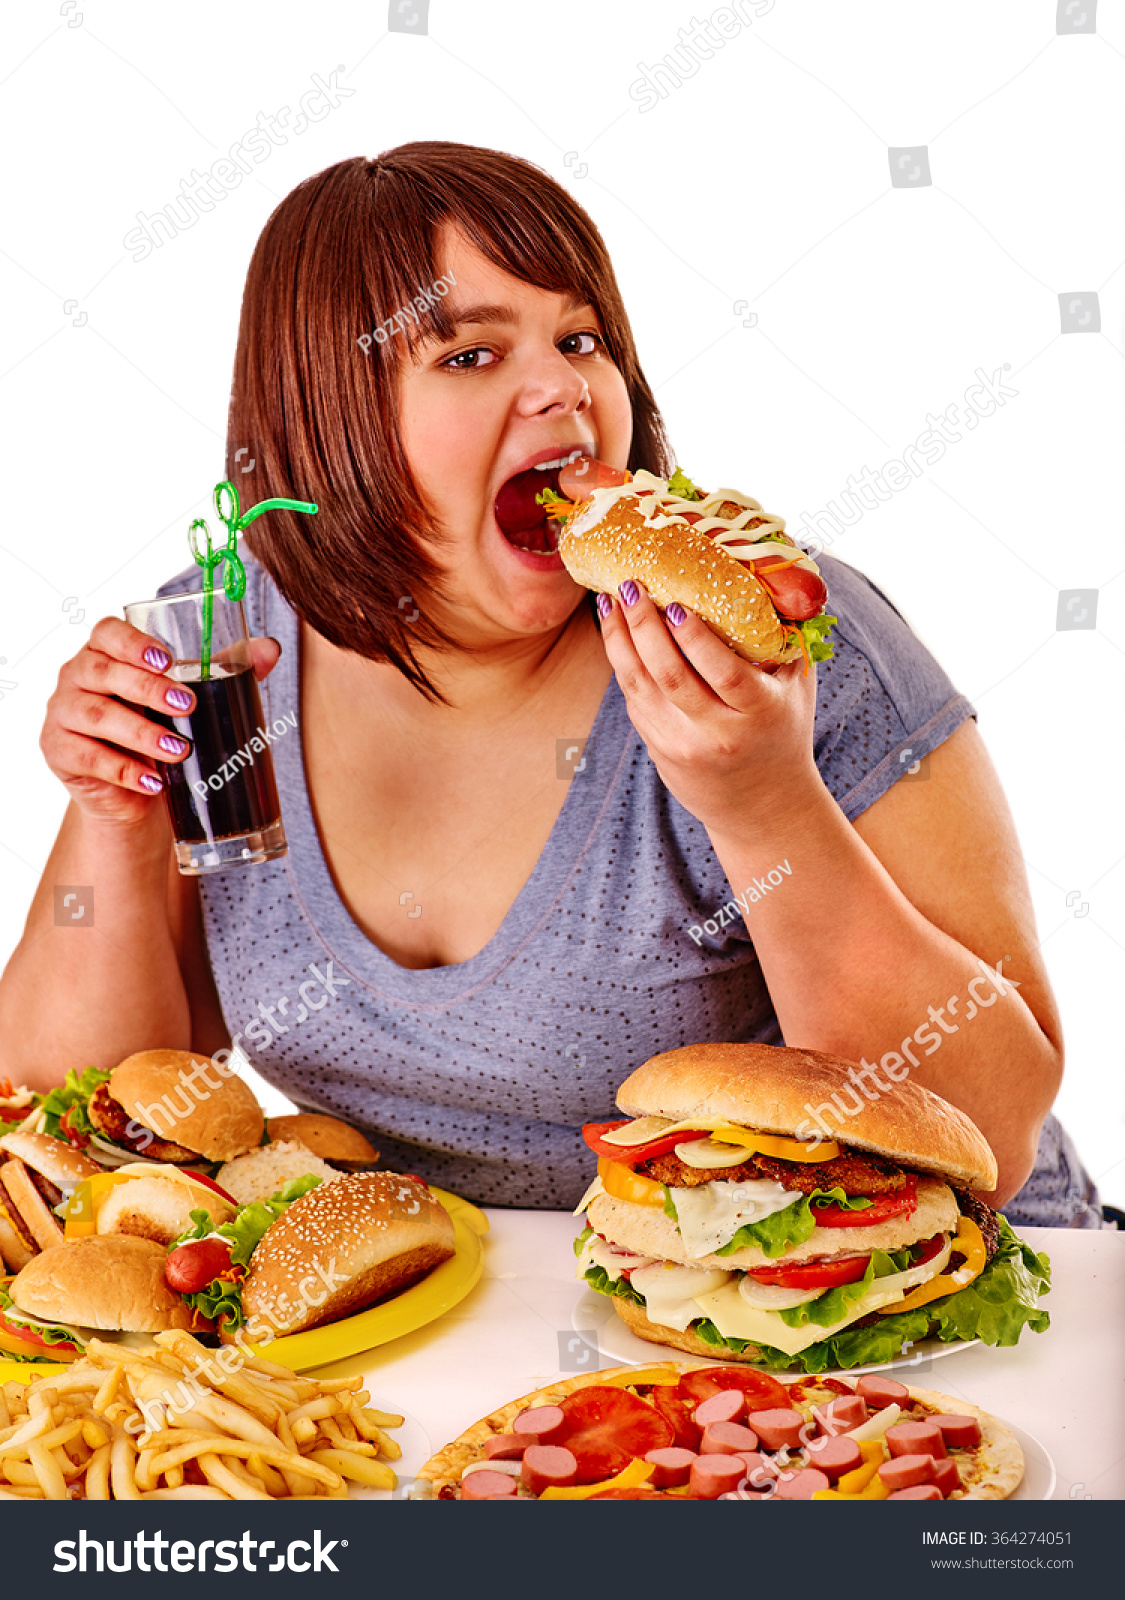 stock-photo-fat-girl-eat-fastfood-hot-do